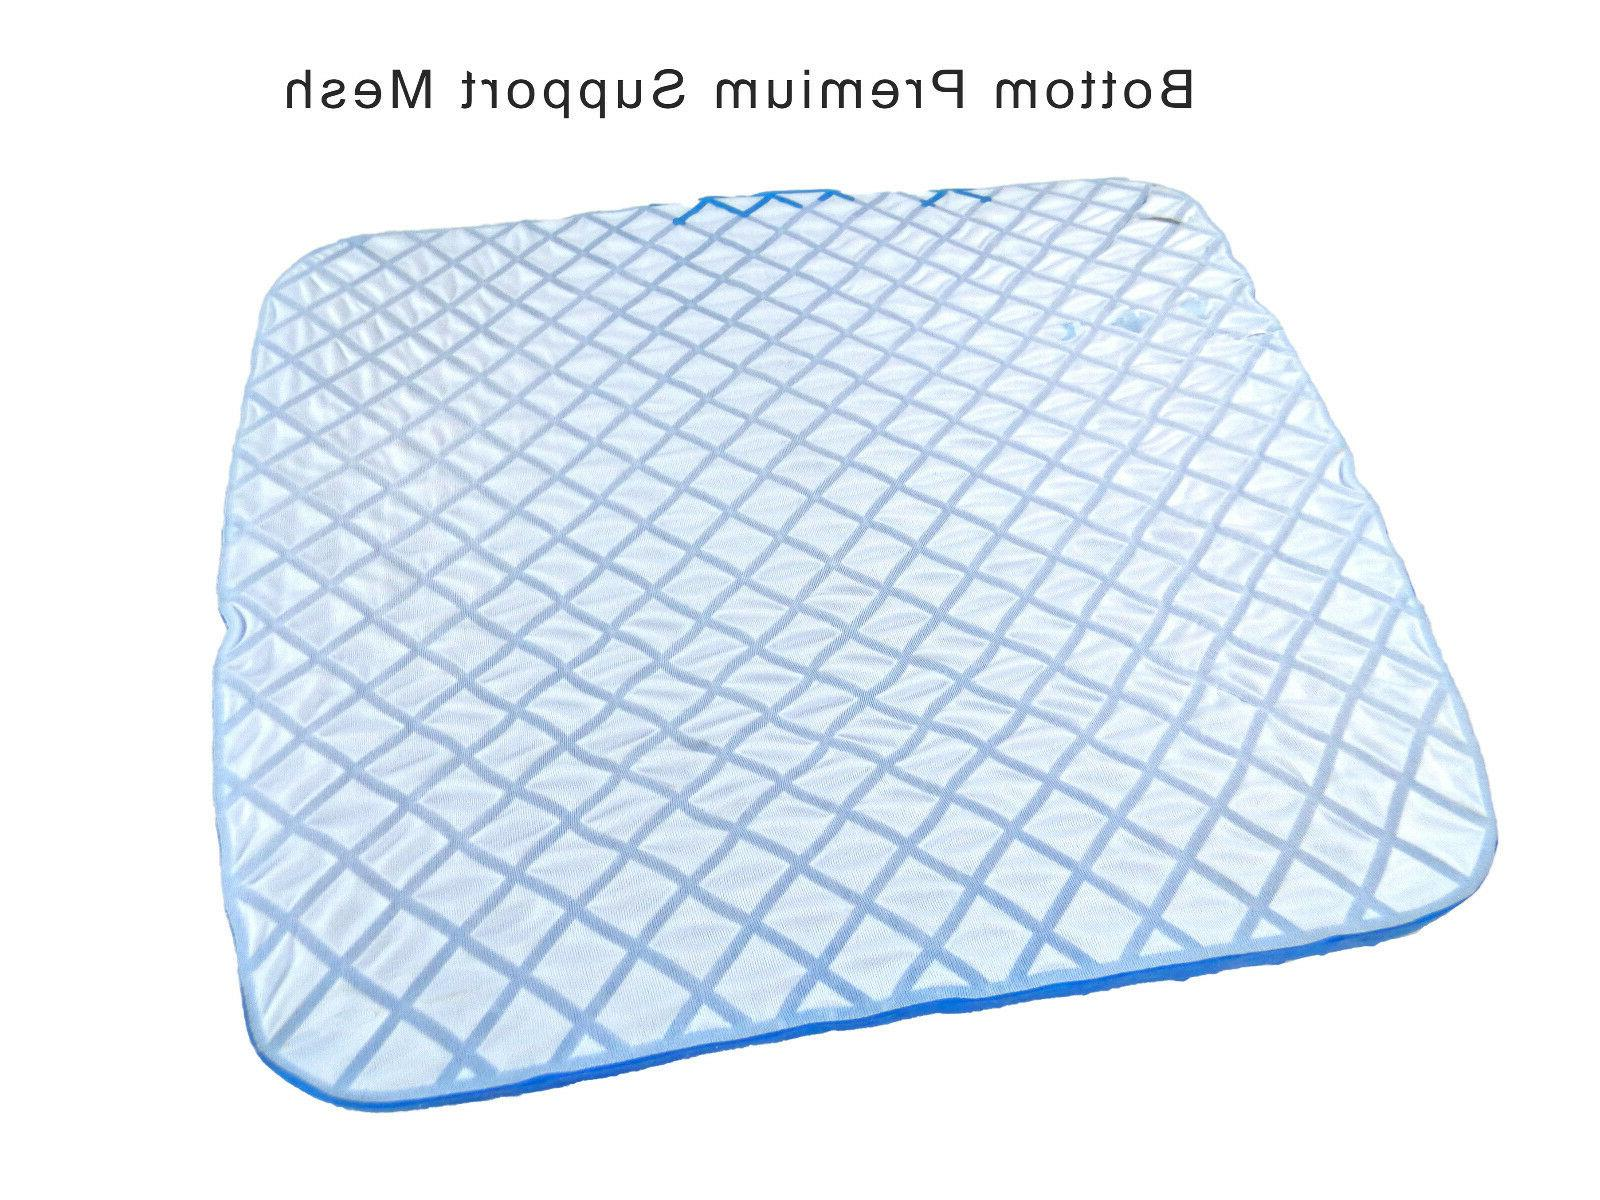 Egg Honeycomb Support Seat Office Non-Slip Breathable